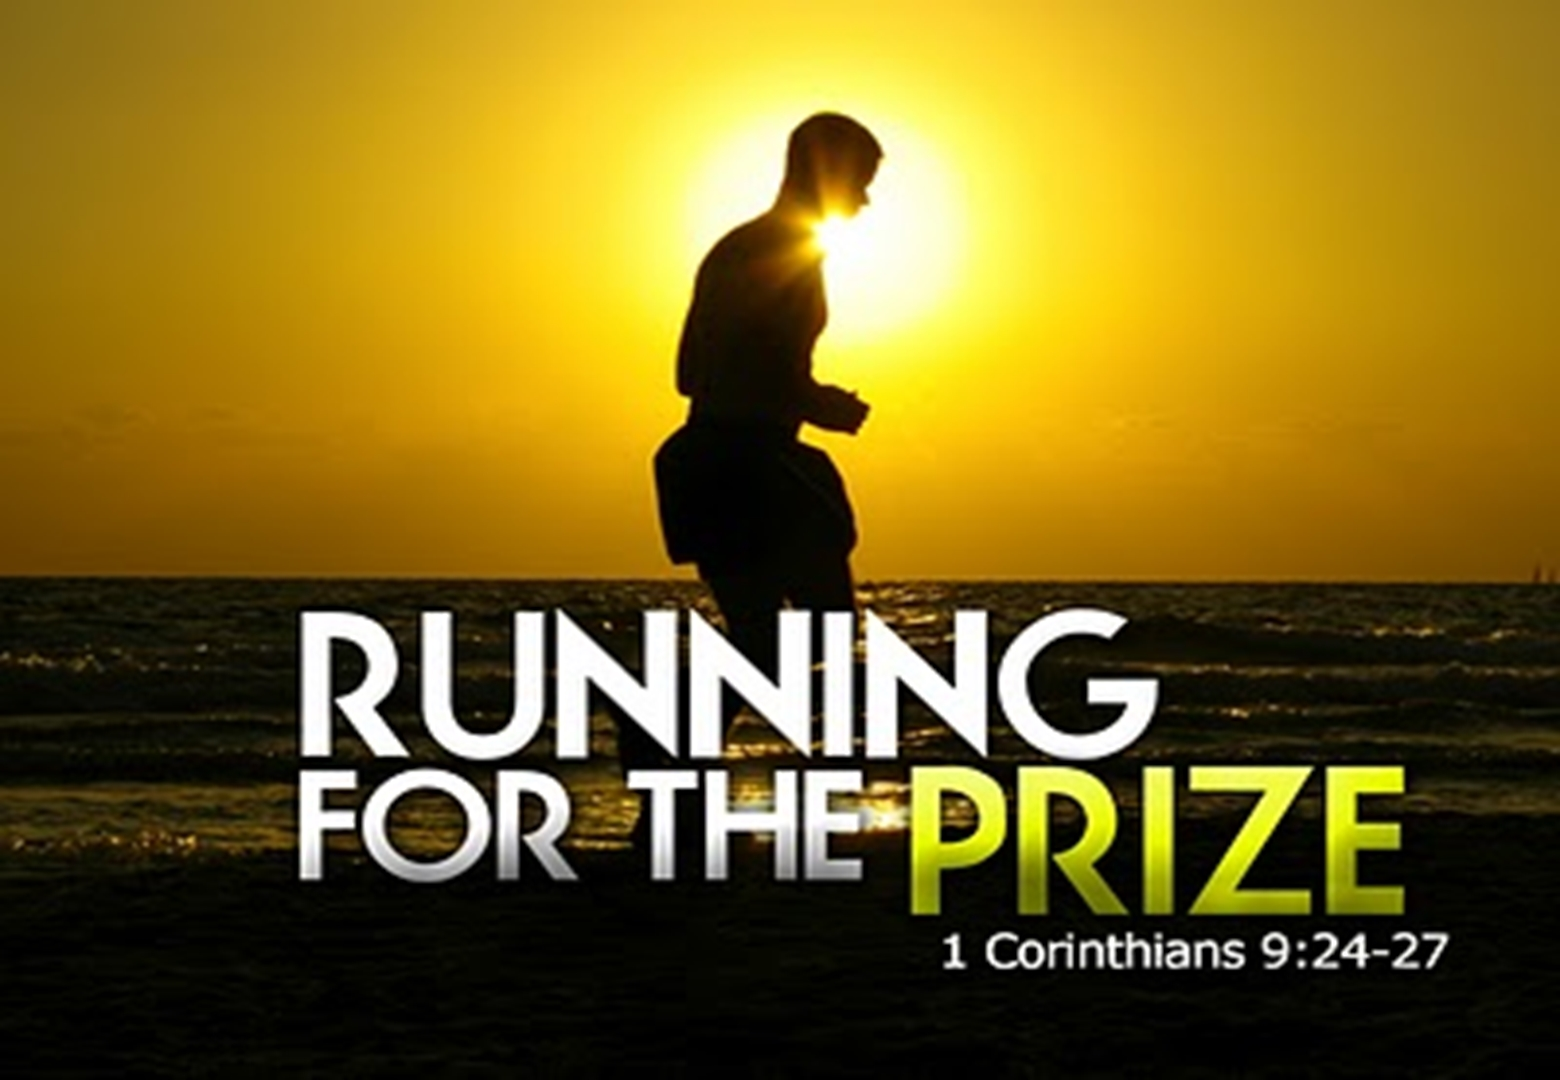 Running for the Prize - 1 Corinthians 9:24-27